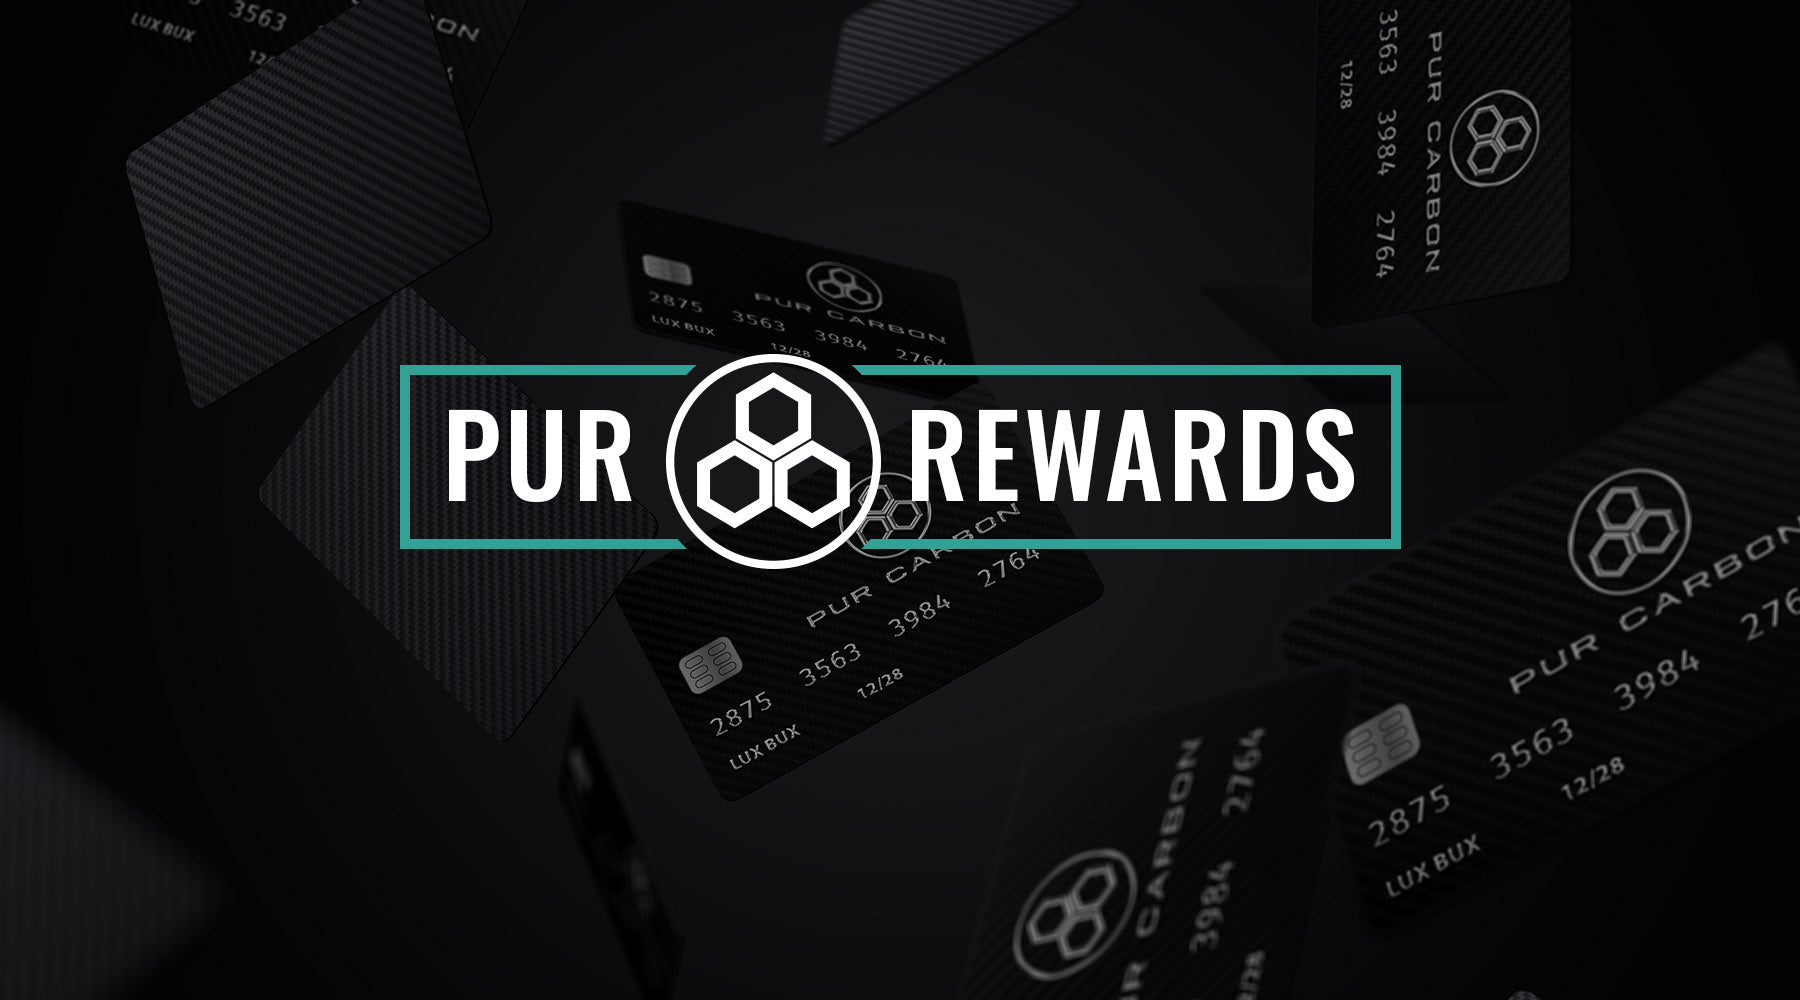 Pur Rewards pays generously for purchasing carbon fiber accessories with Lux Bux